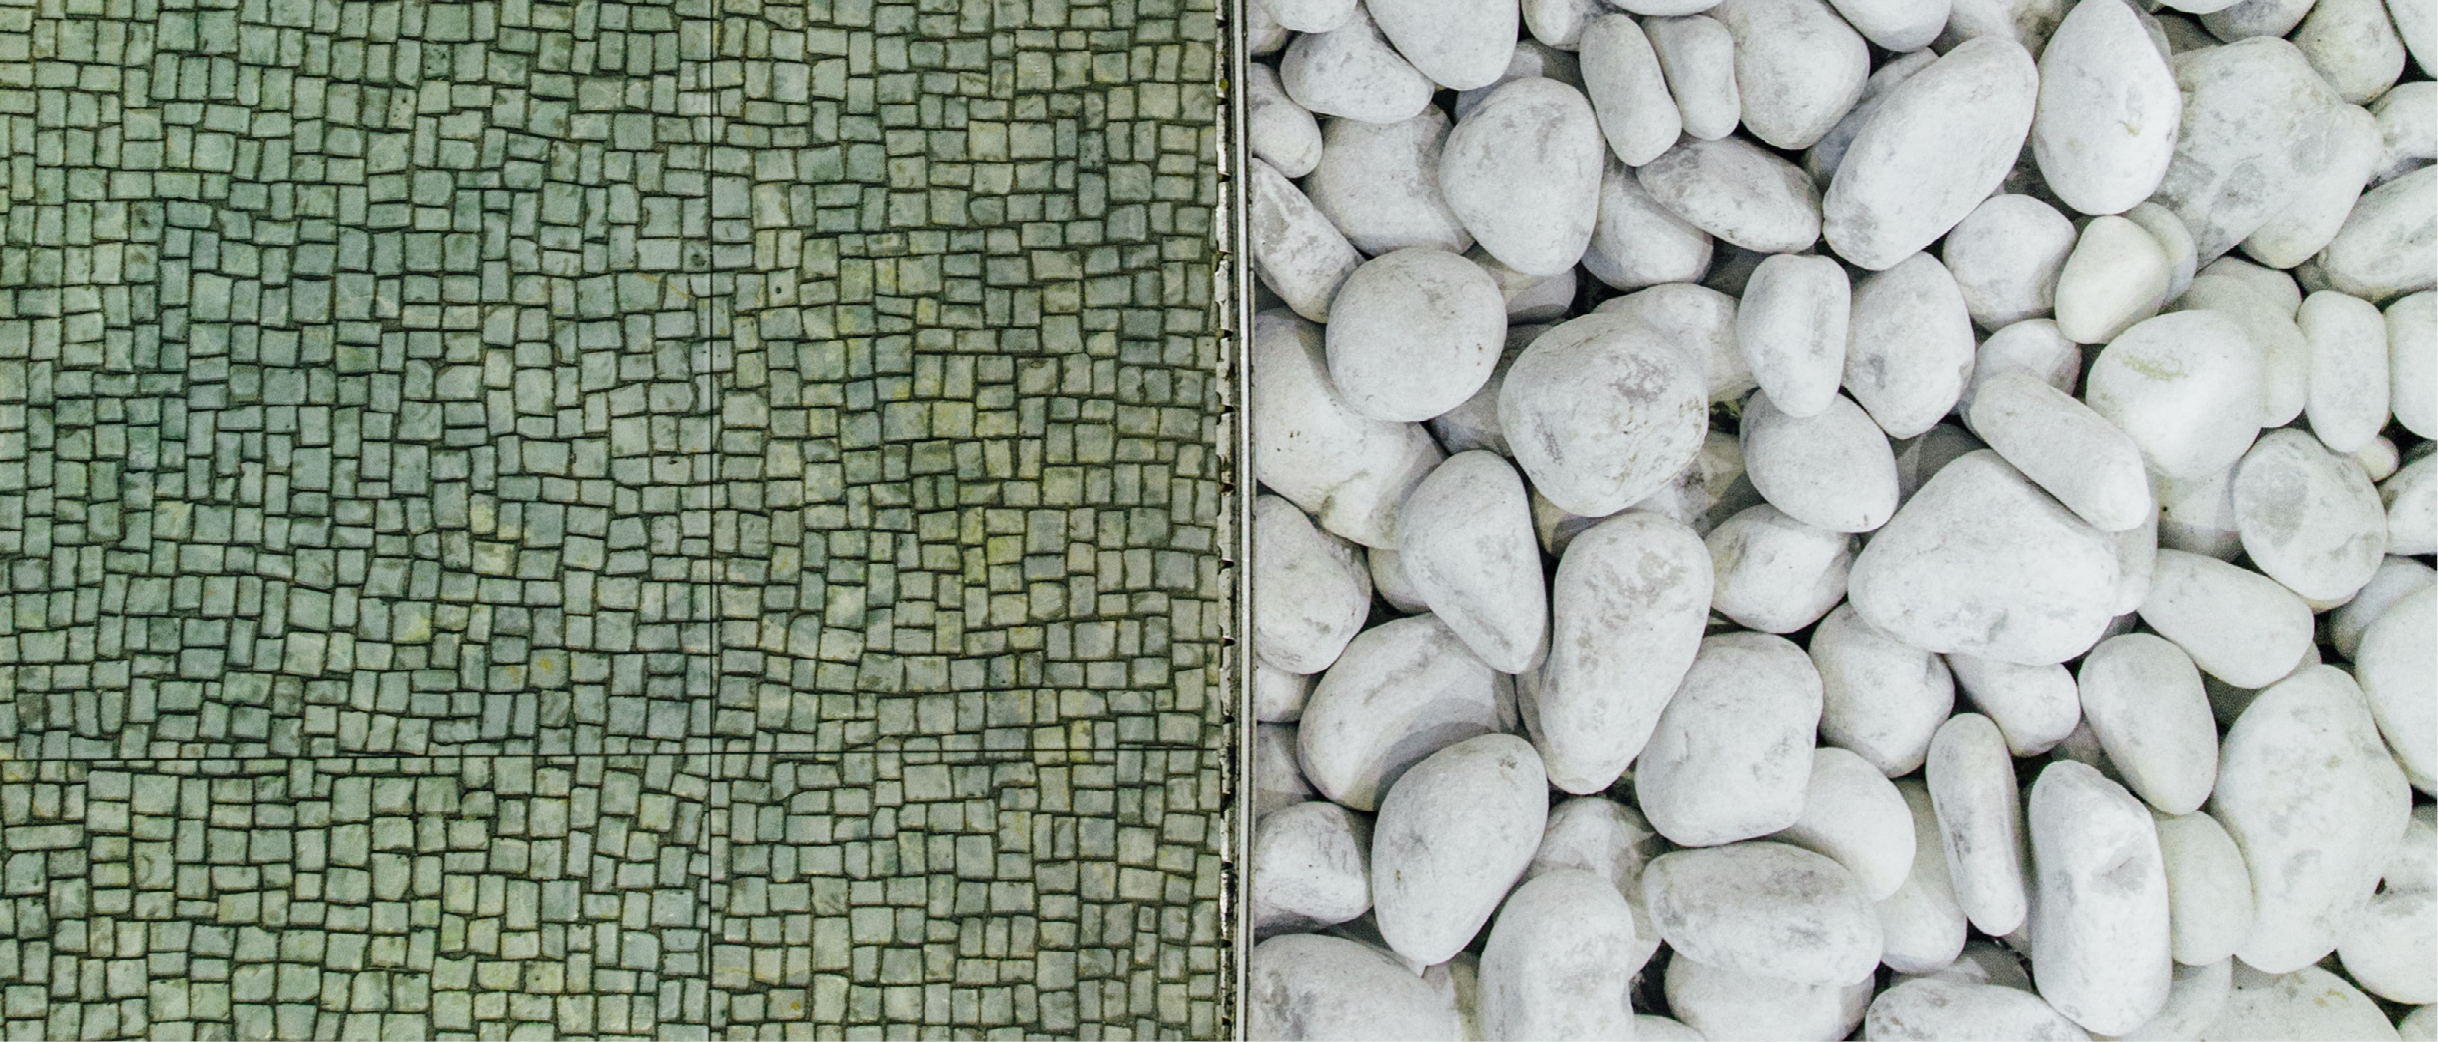 Stone collage image by John Mark Arnold on Unsplash